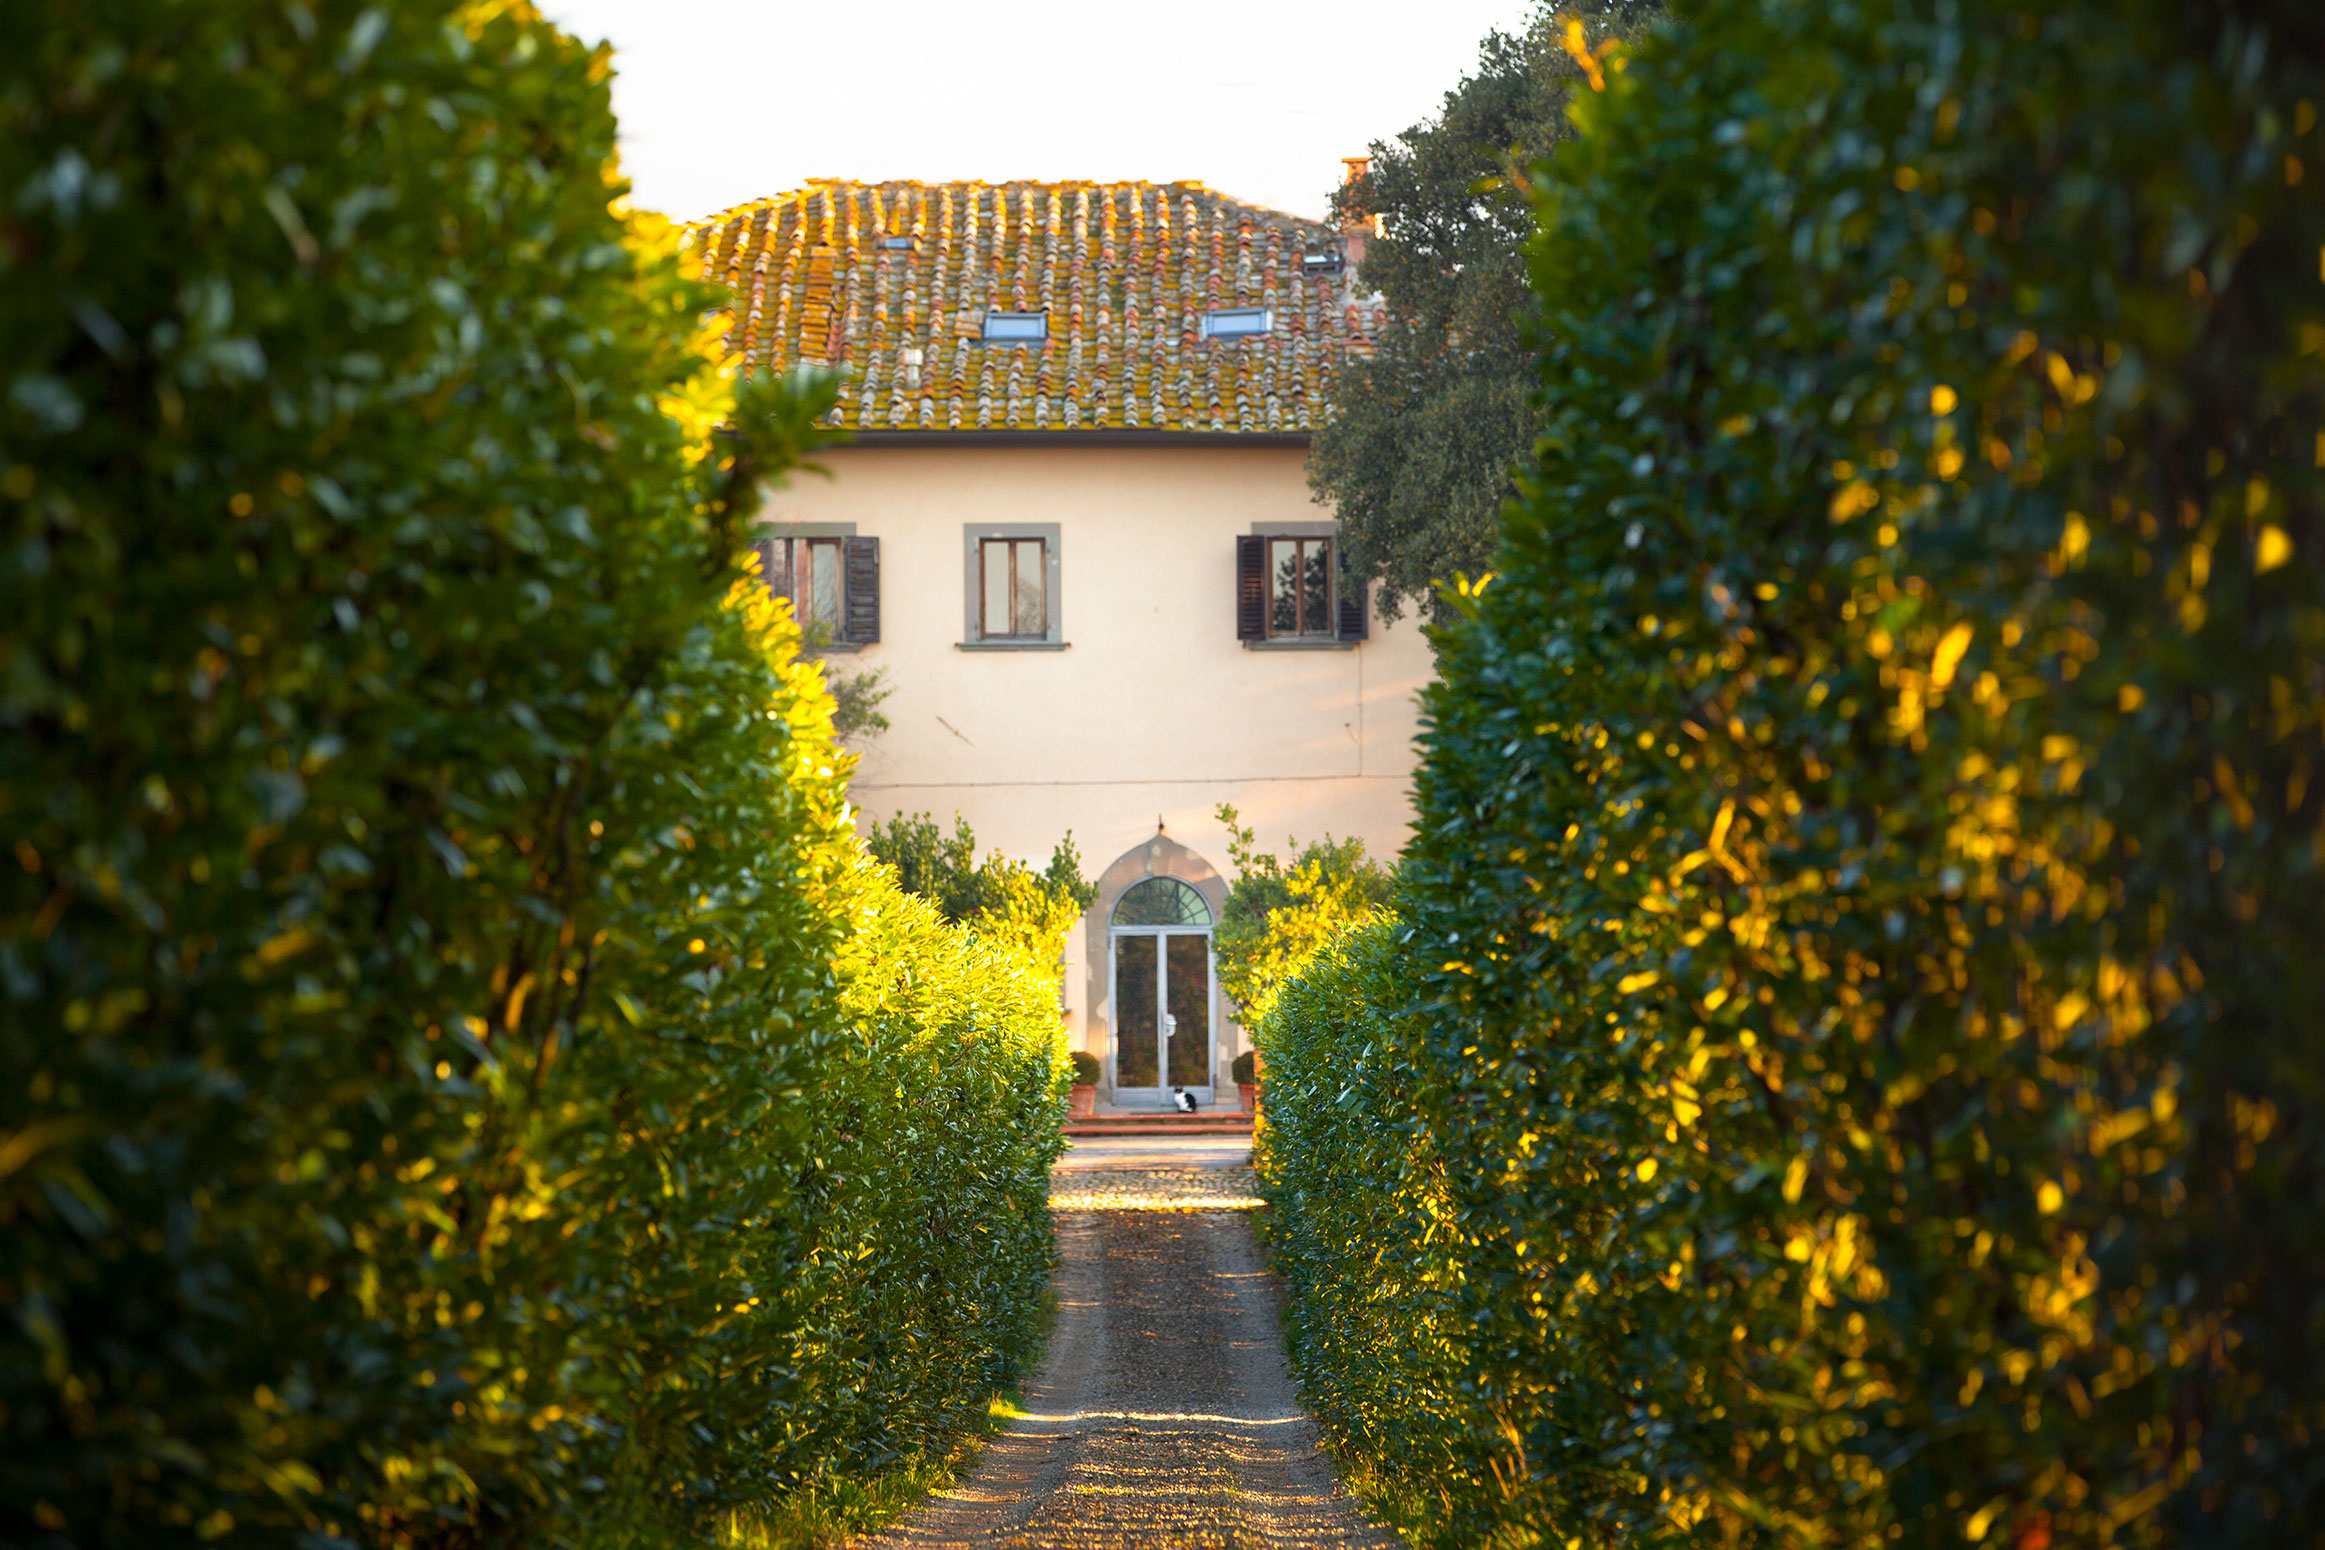 Historical Villa in Chianti Tuscany near Florence and Siena